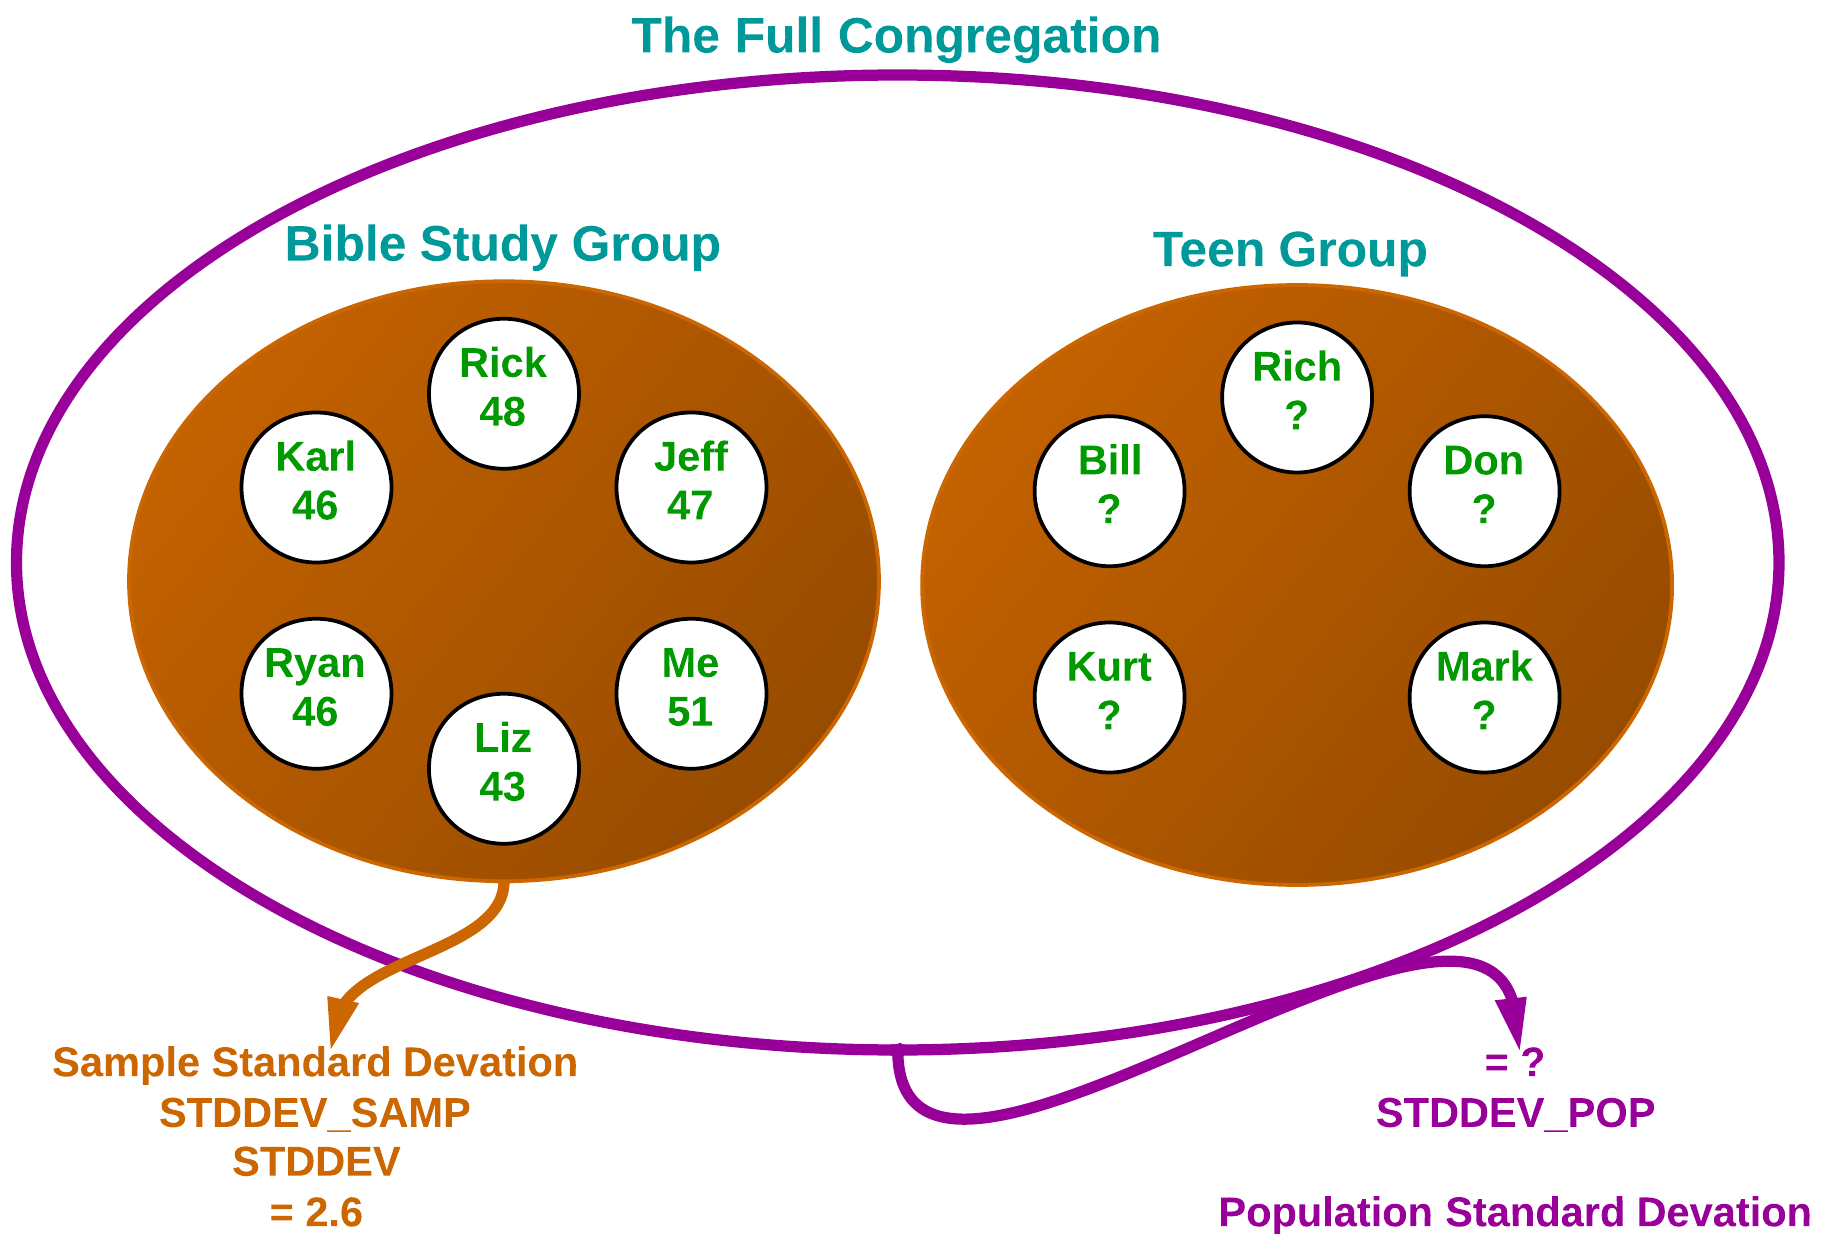 Figure 3. A population from one context can be a sample in another.